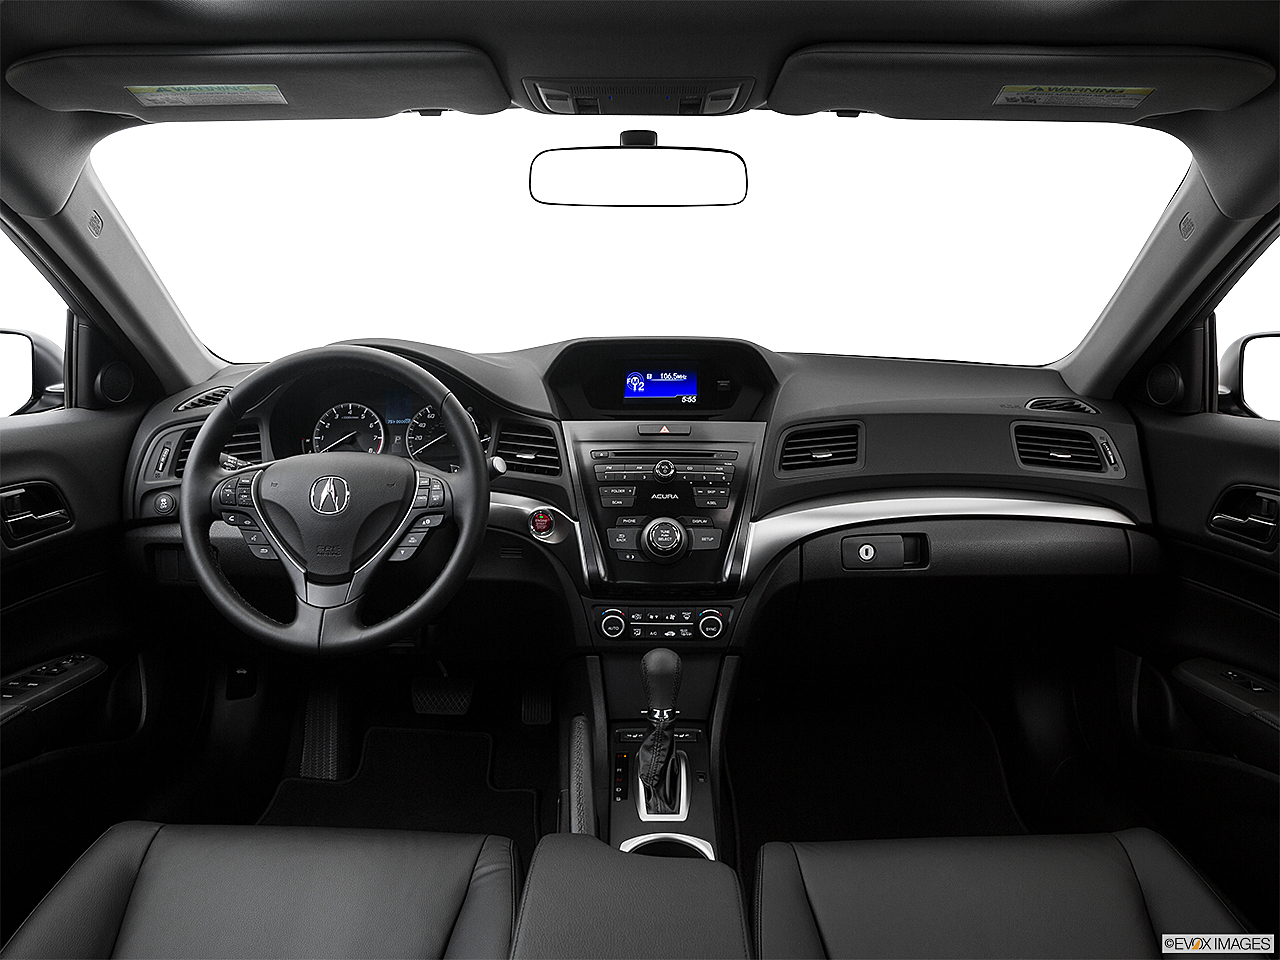 2018 Acura ILX, centered wide dash shot